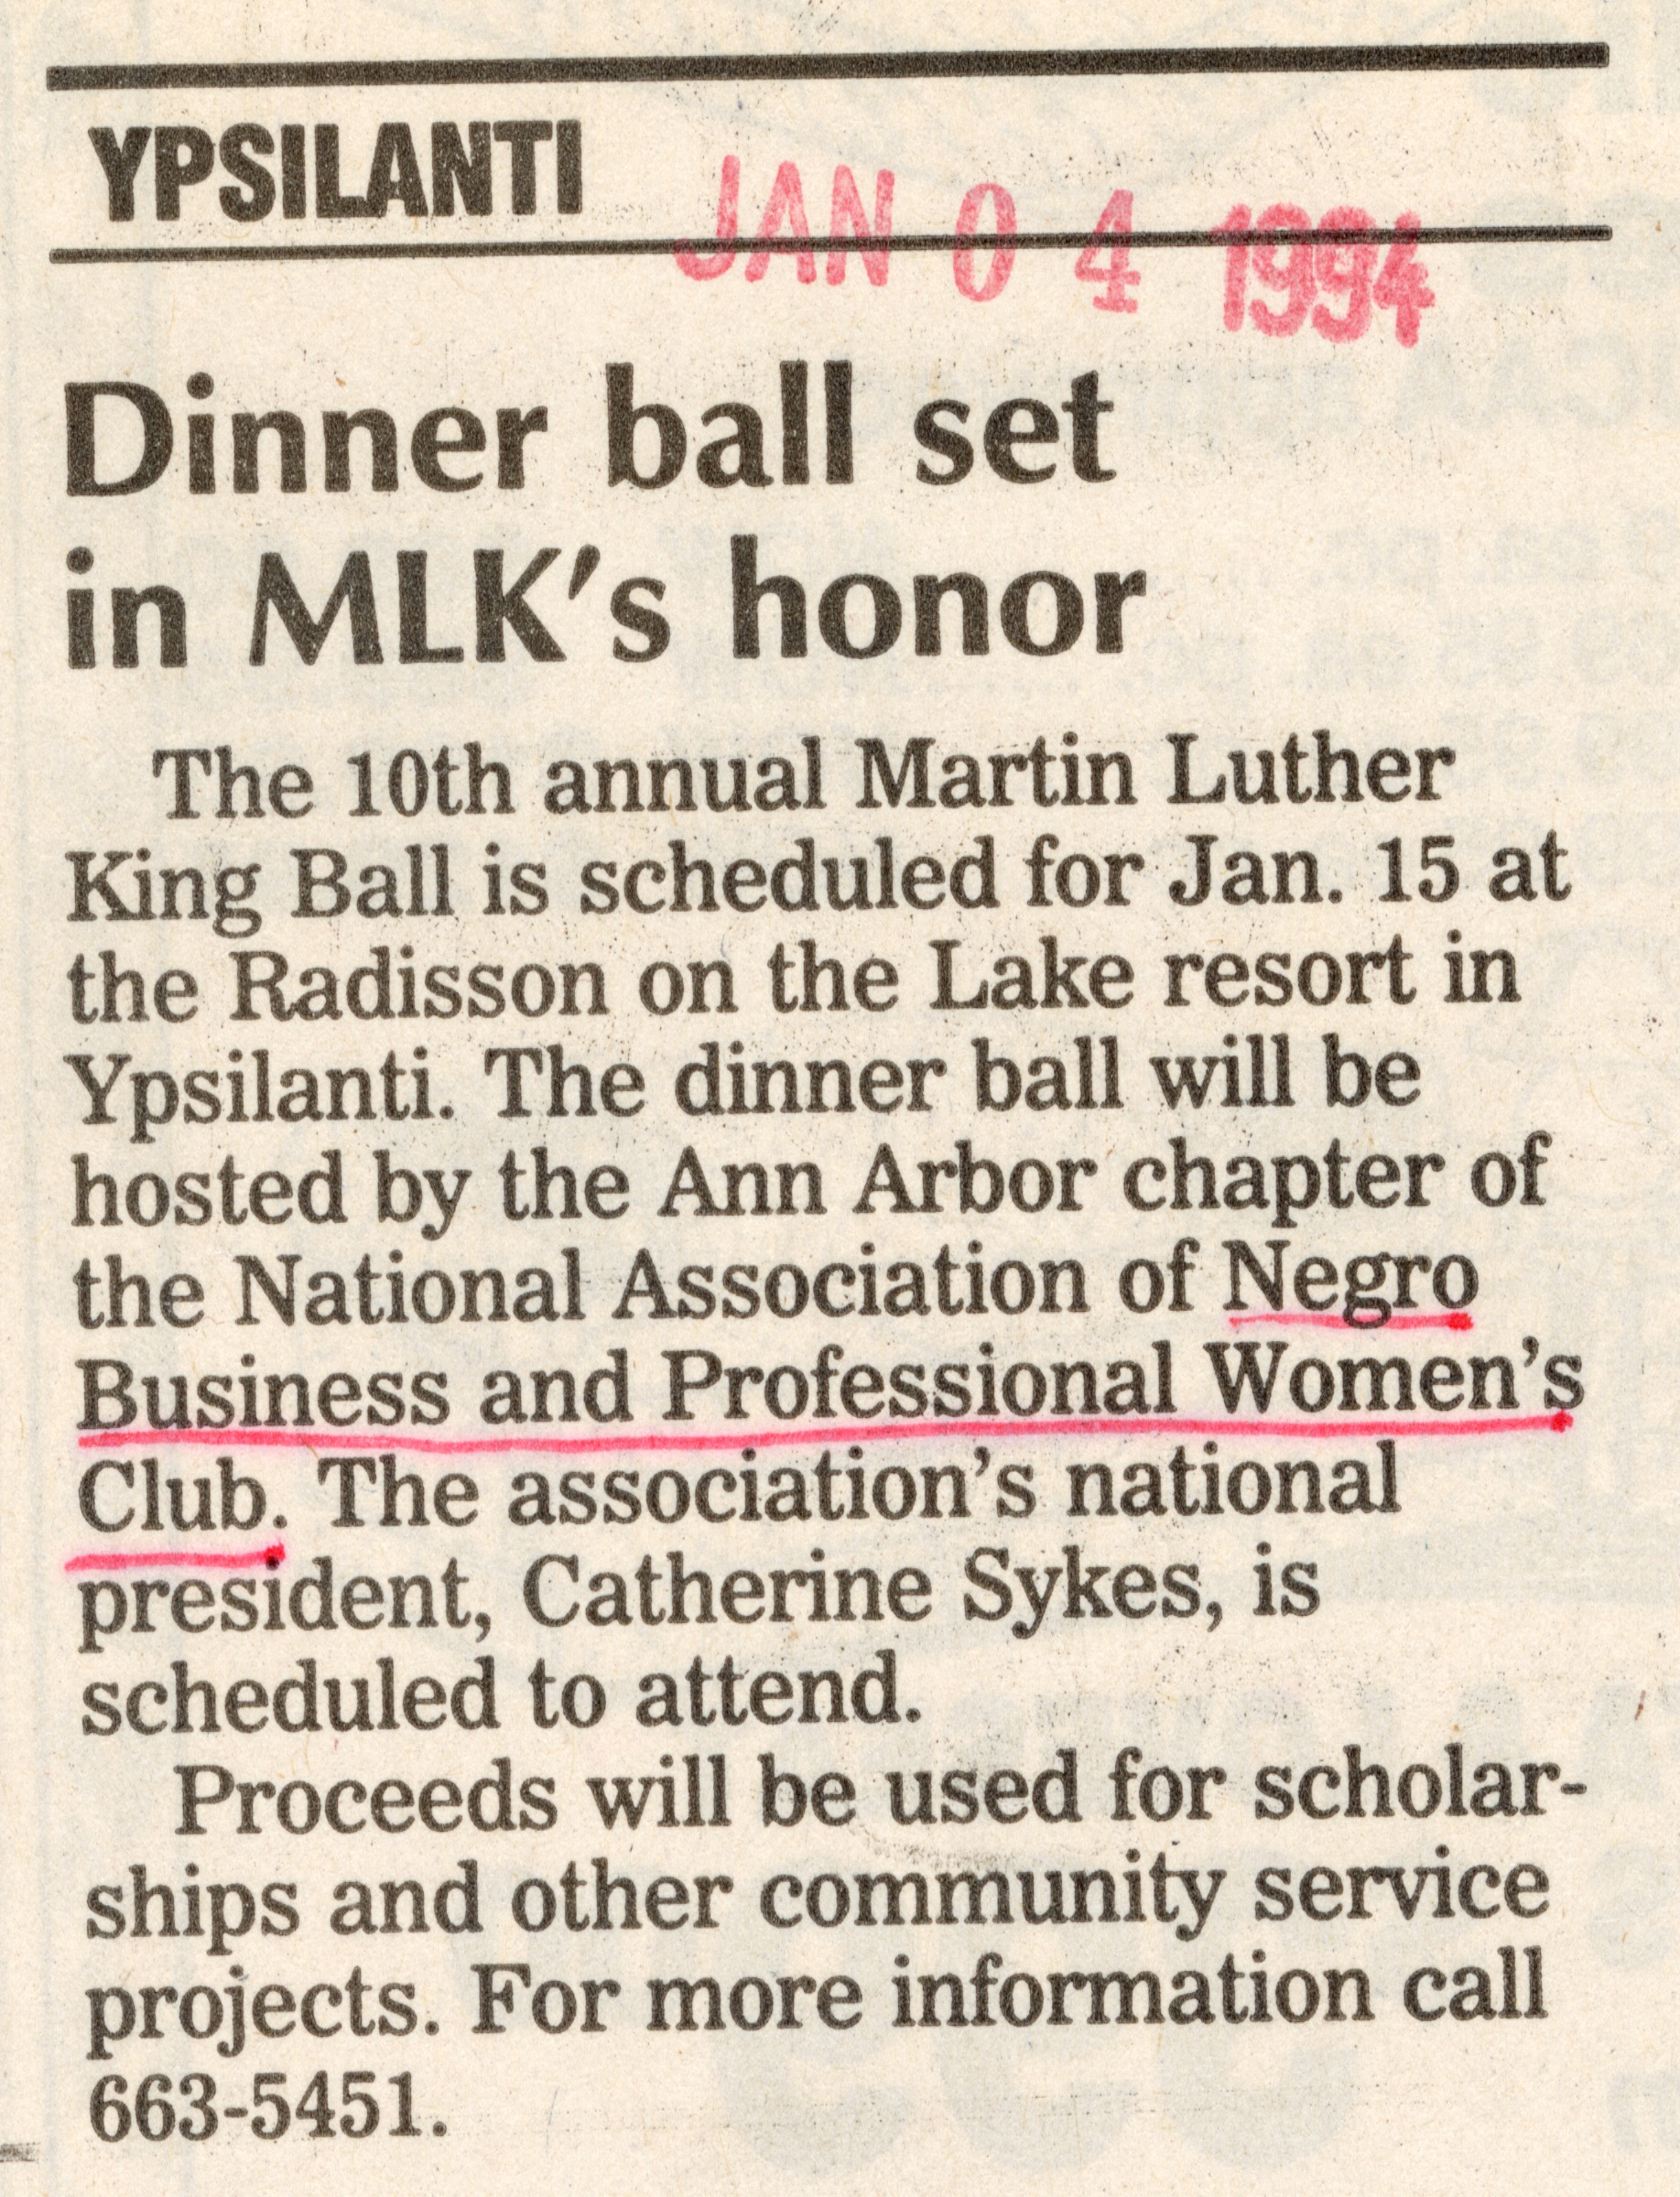 Dinner ball set in MLK's honor image